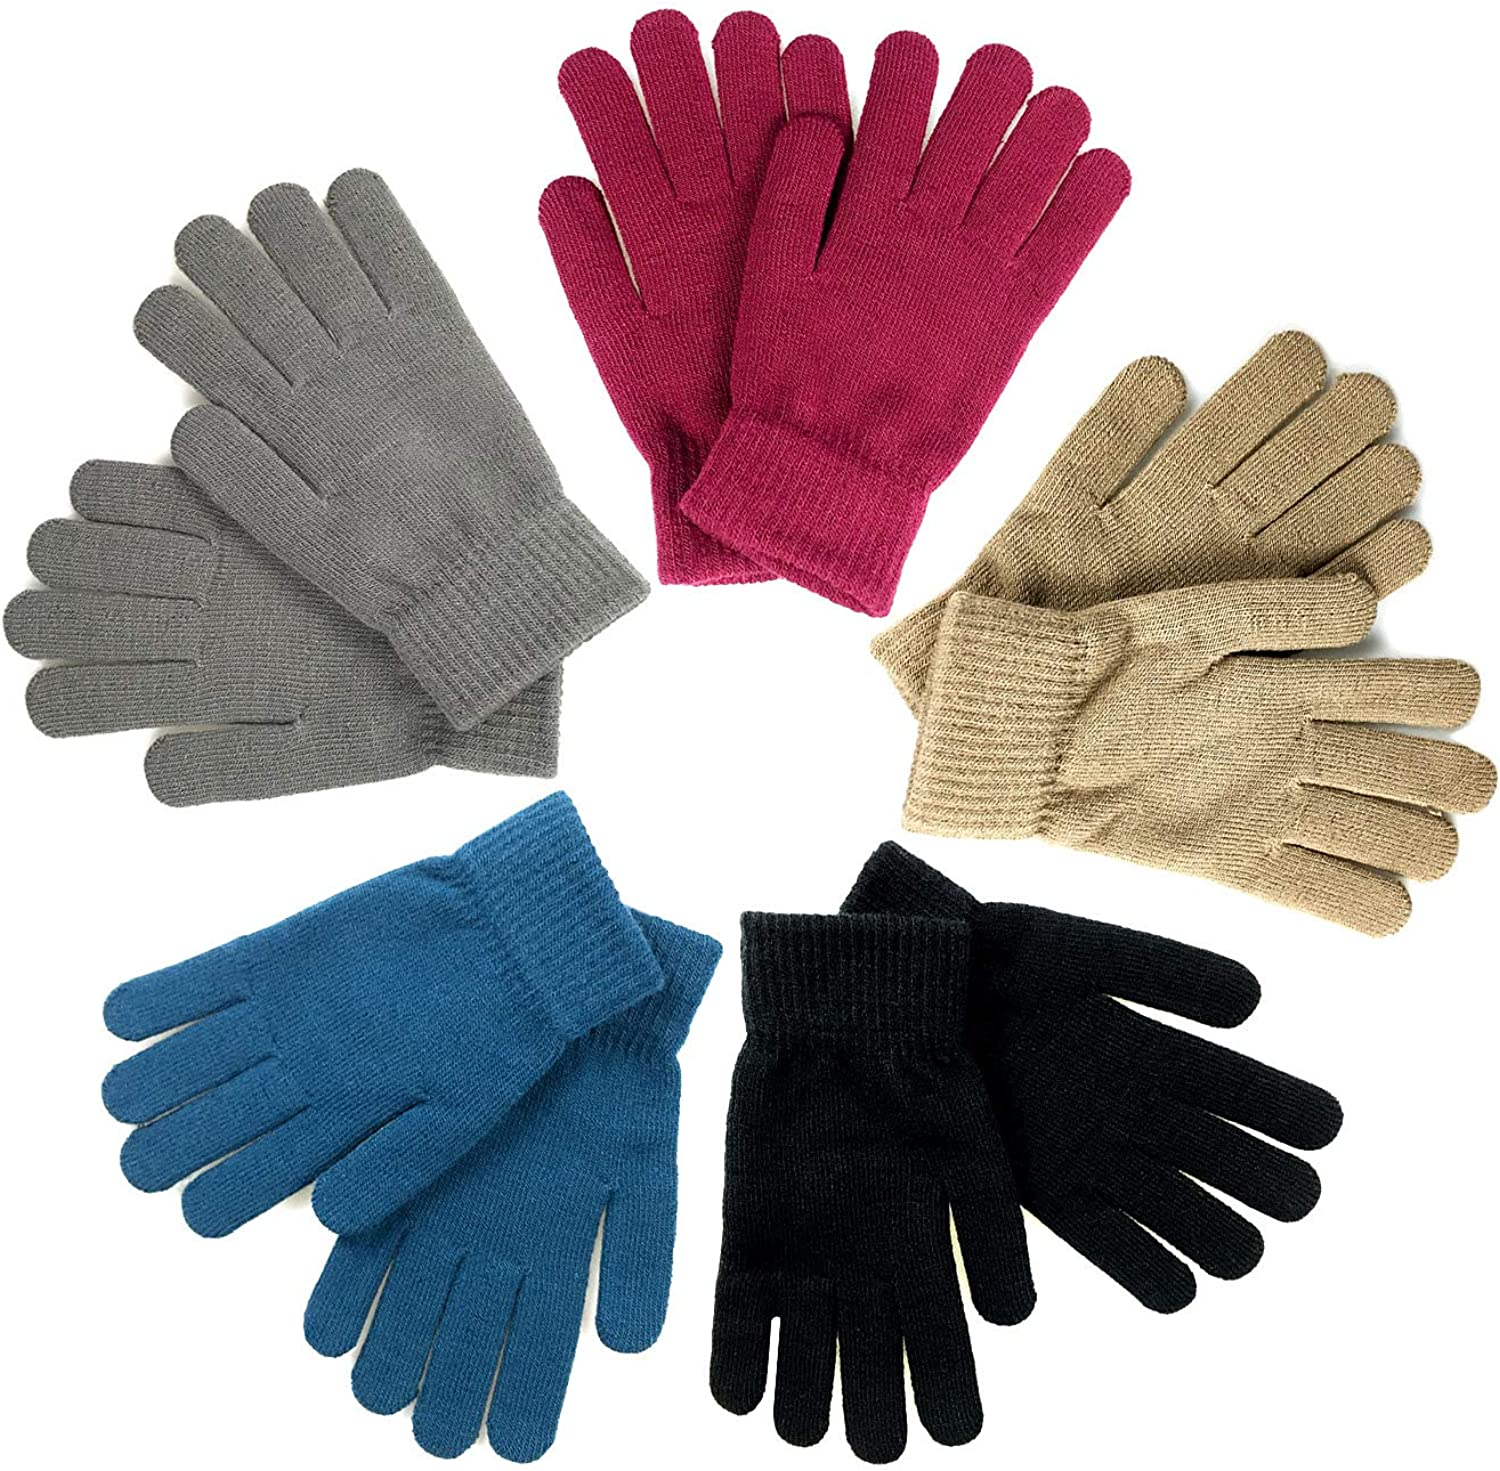 5 pairs of winter knitted magic elastic gloves for adults